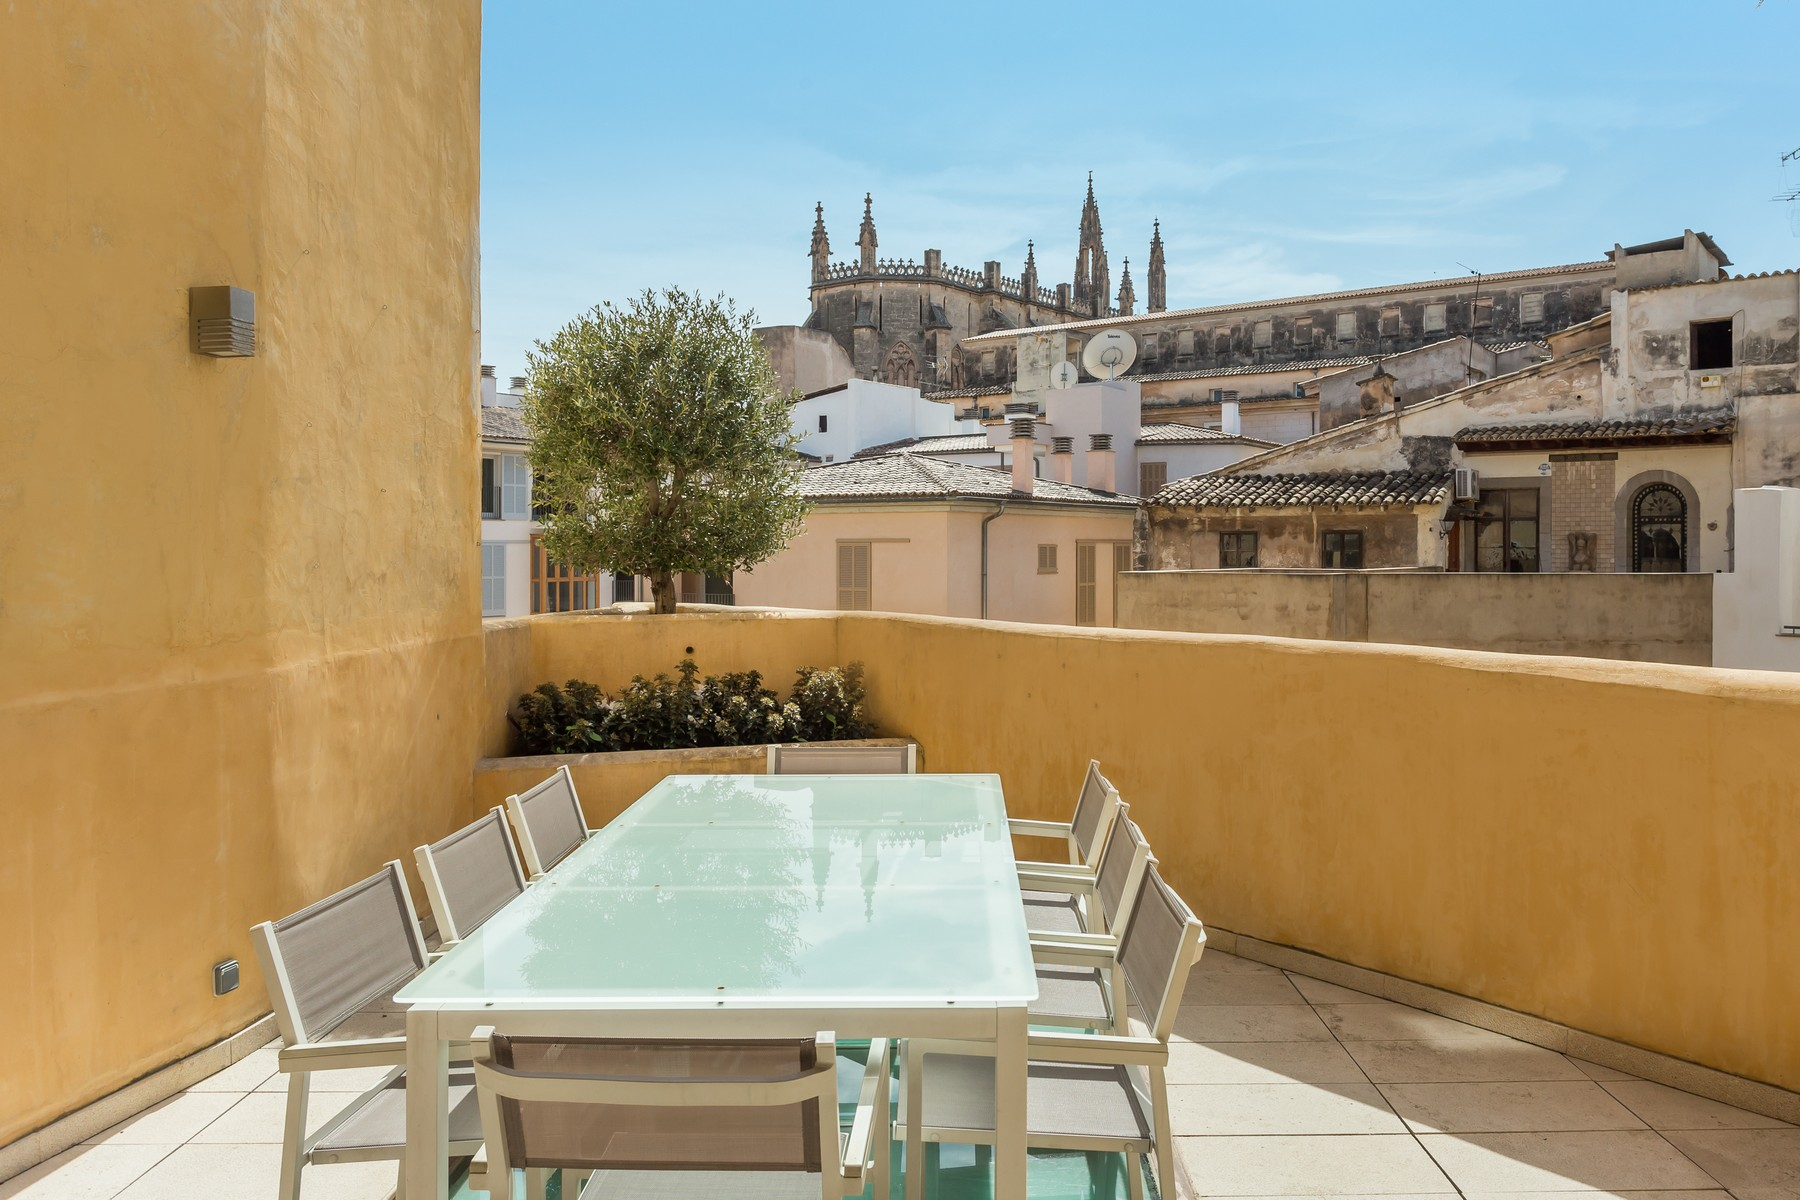 Single Family Home for Sale at Historic house with pool in the Old Town Palma, Mallorca, 07001 Spain